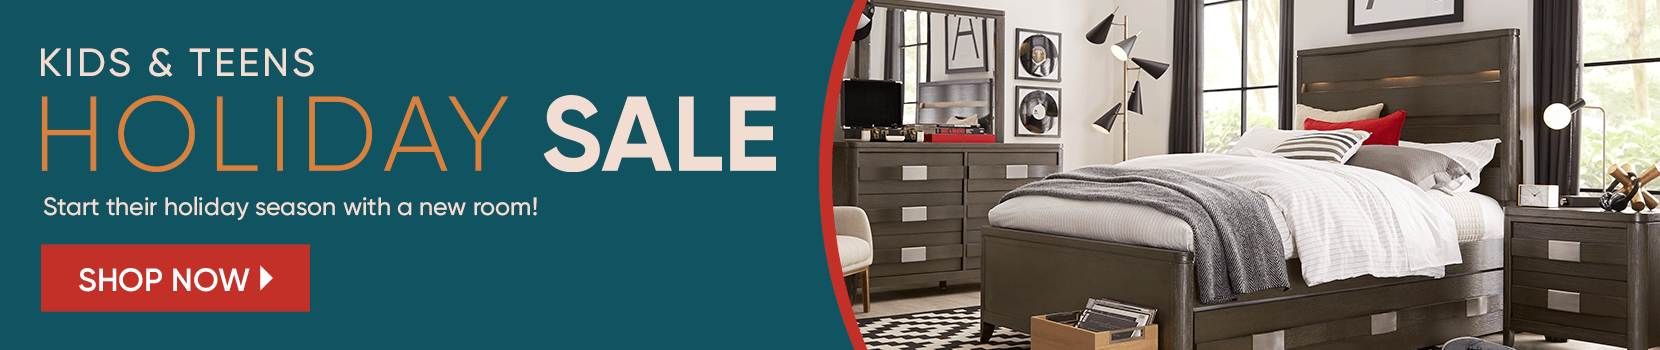 kids and teens holiday sale. start their holiday season with a new room. shop now